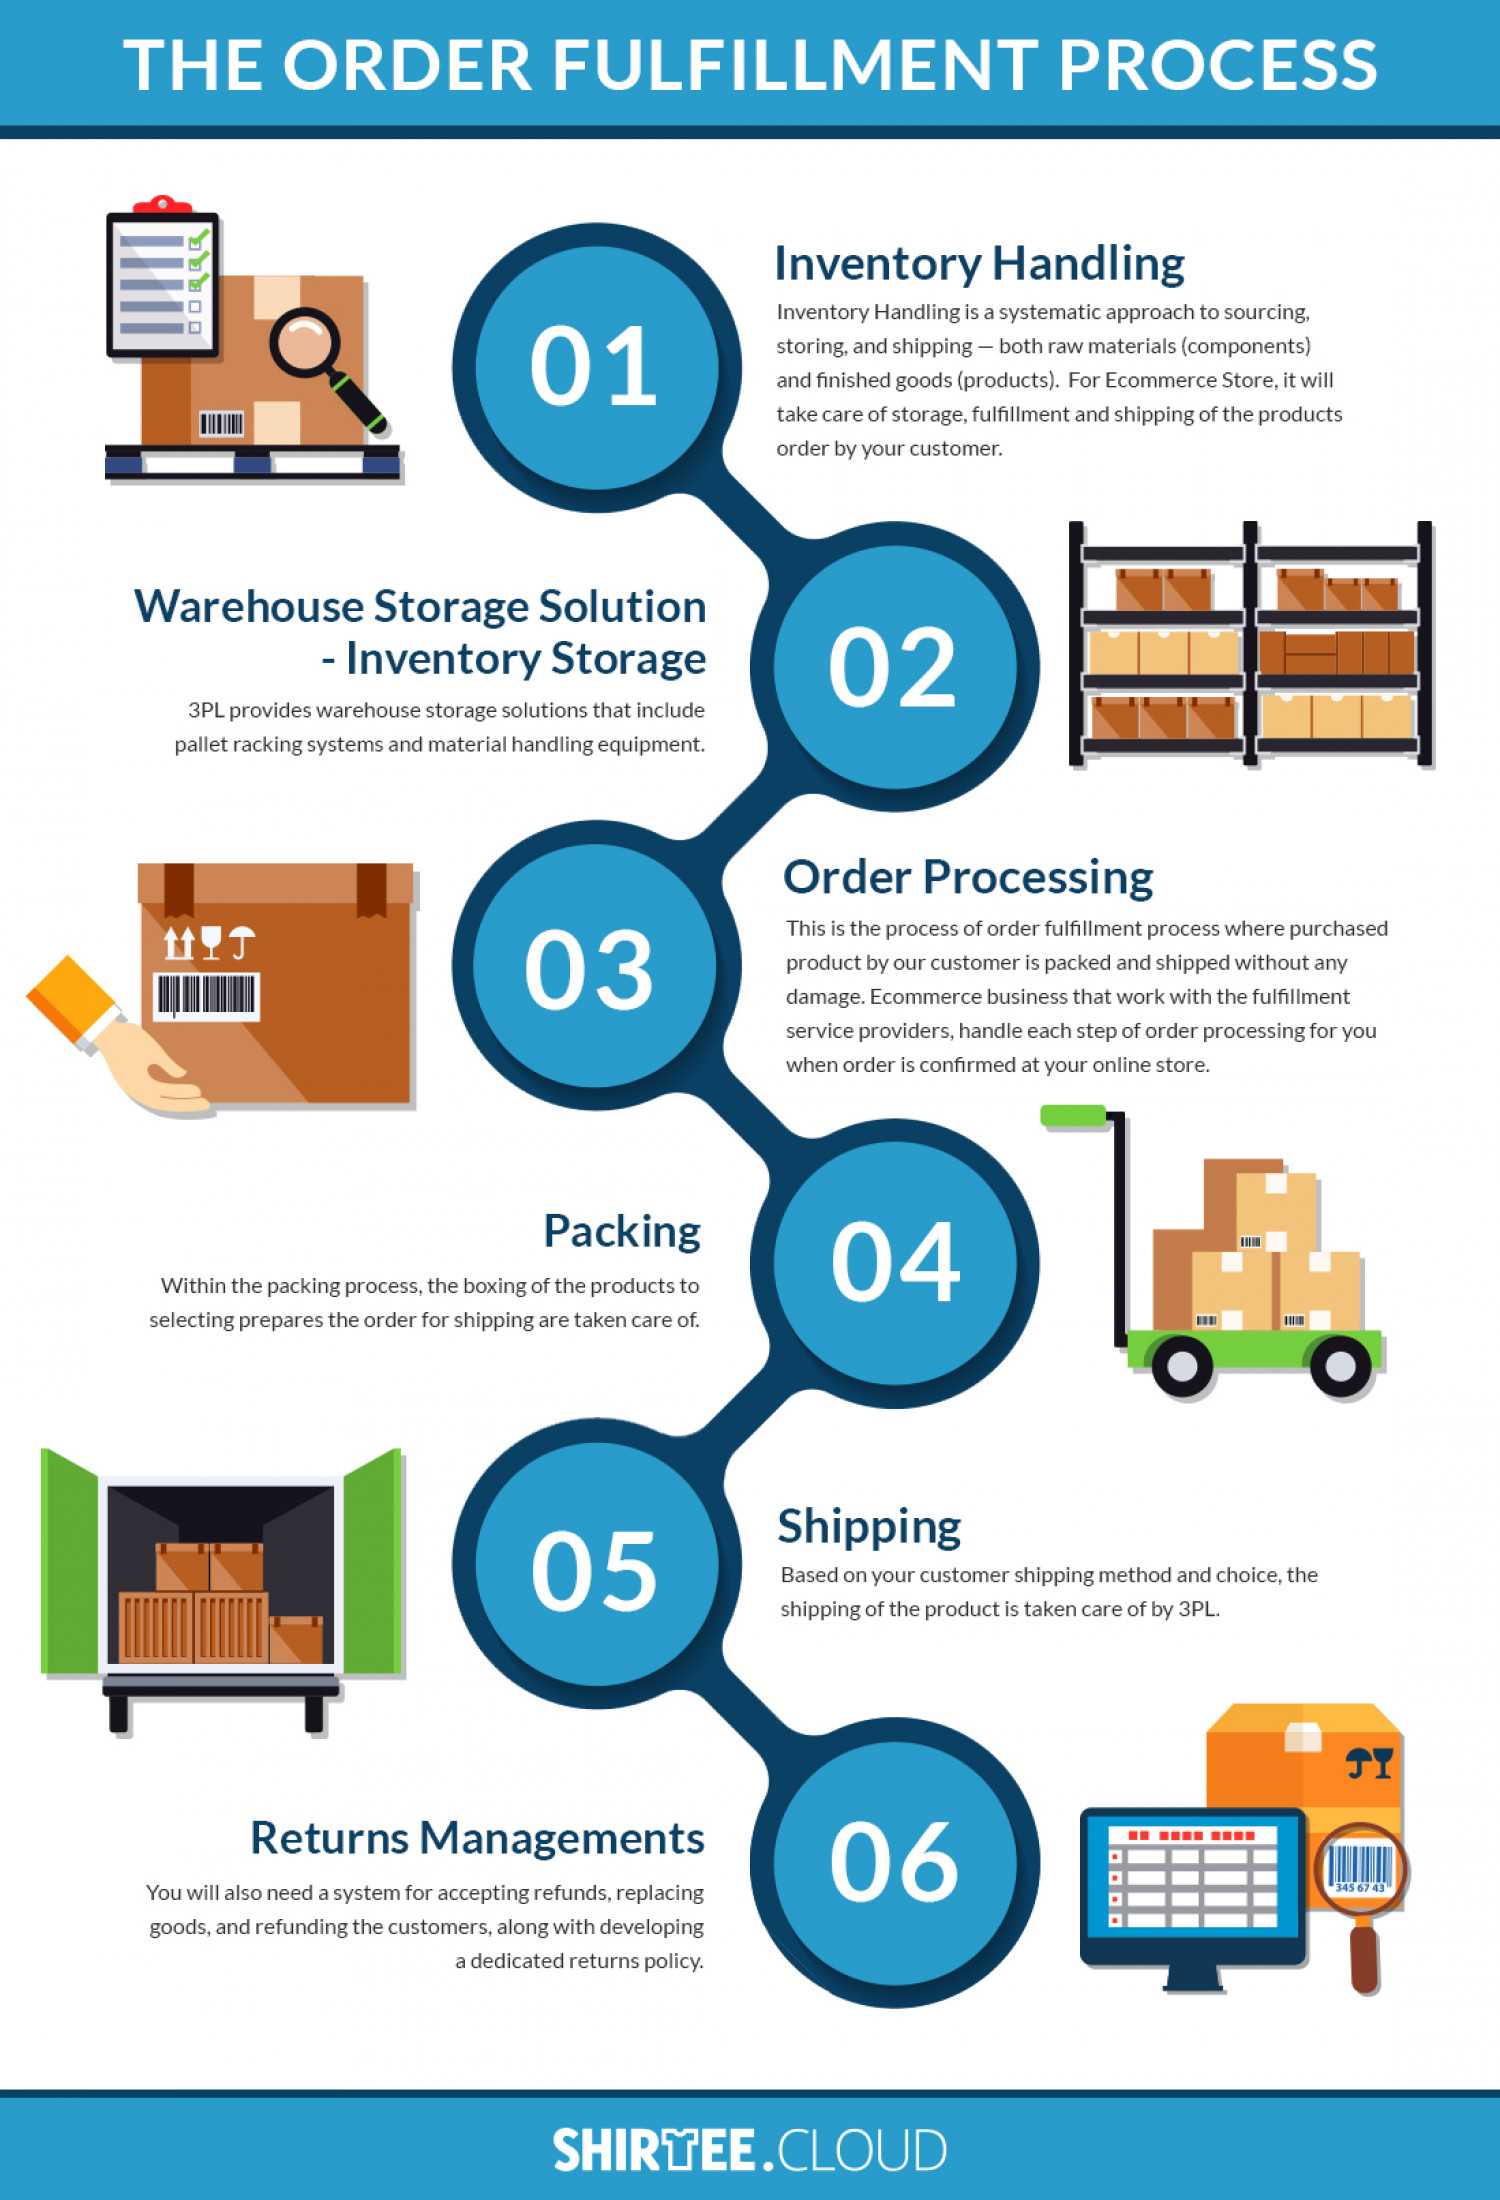 The Order Fulfillment Process Infographic